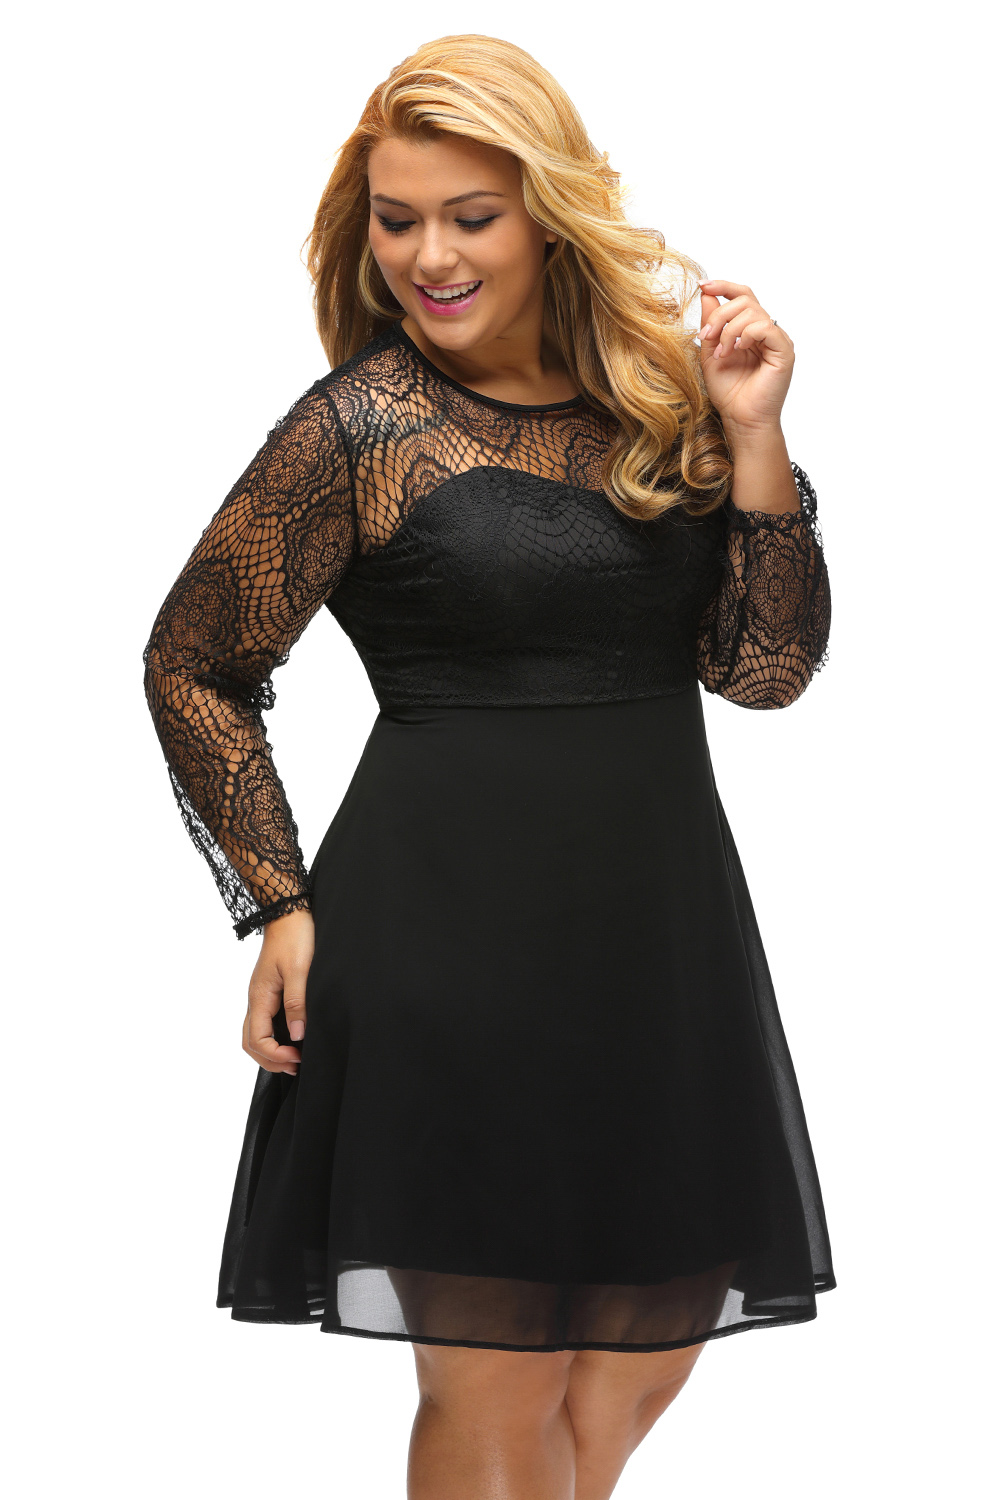 7764d89a3d78 2018 Women Elegant Vintage Black Boohoo Plus Size Lace Top Skater Dress  Casual Work Party A-Line Mini Dress Robe Femme DL22870